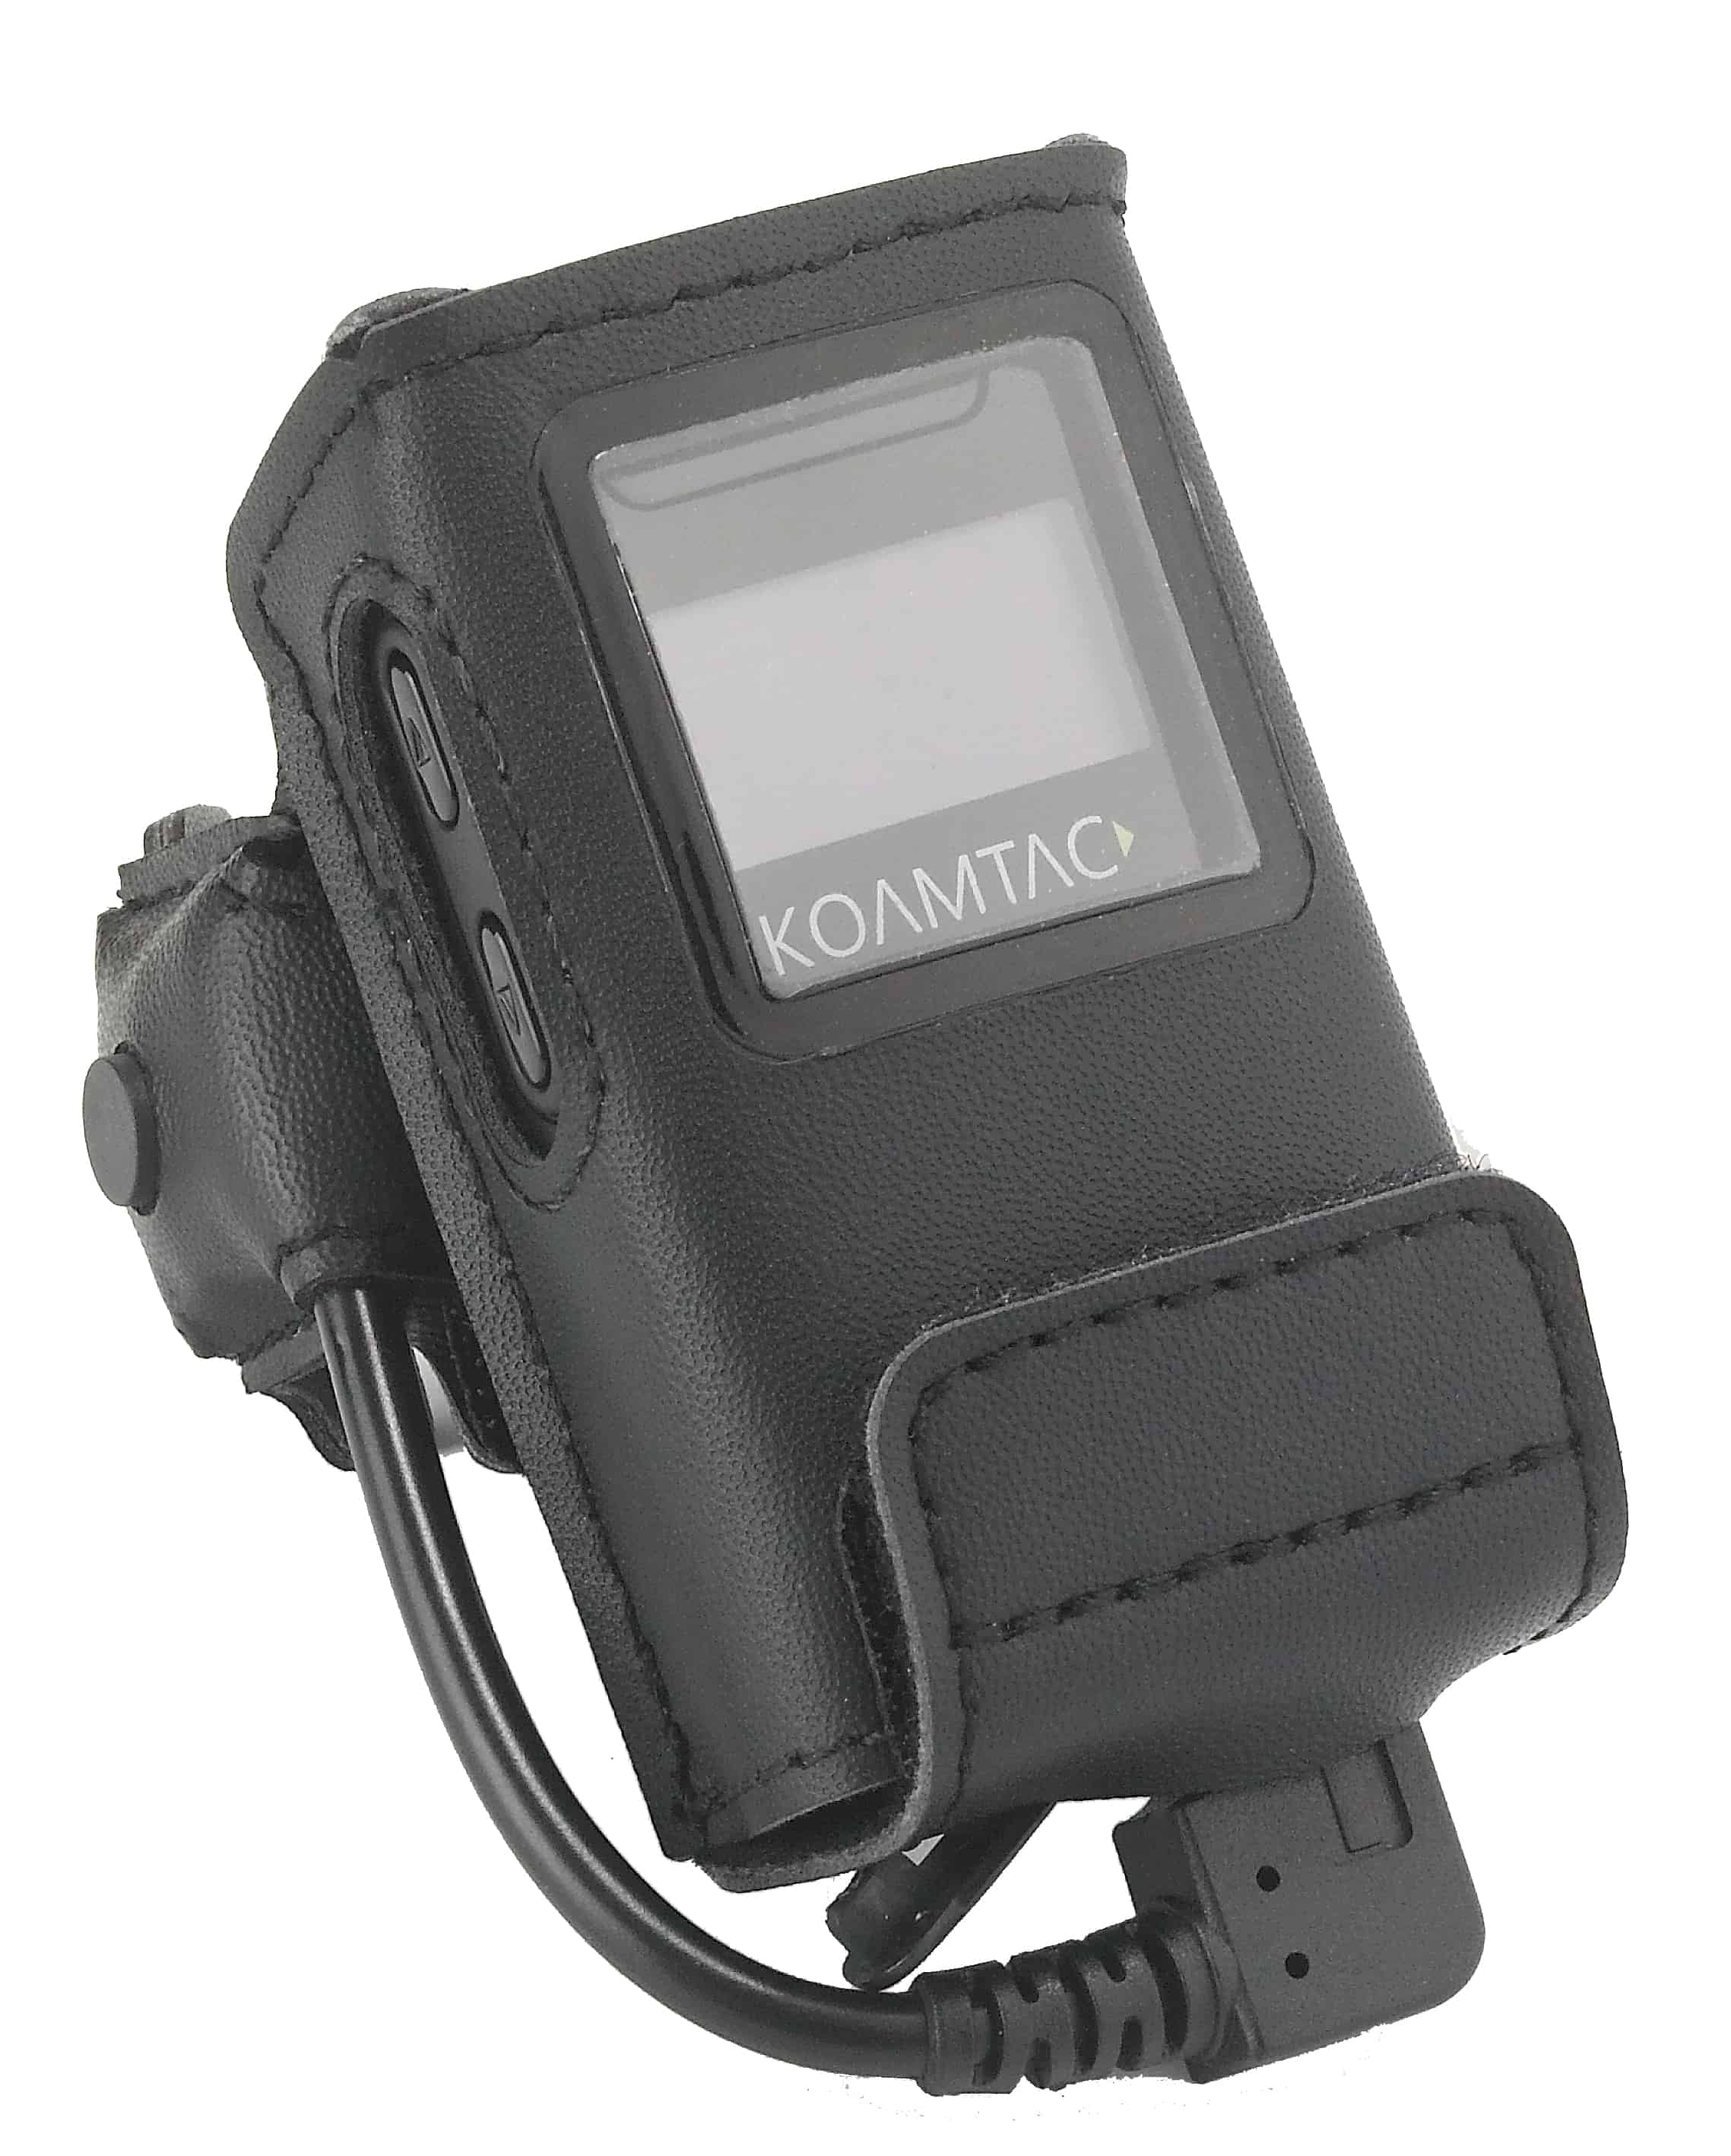 KDC 200i Barcode Scanner Charging Cable